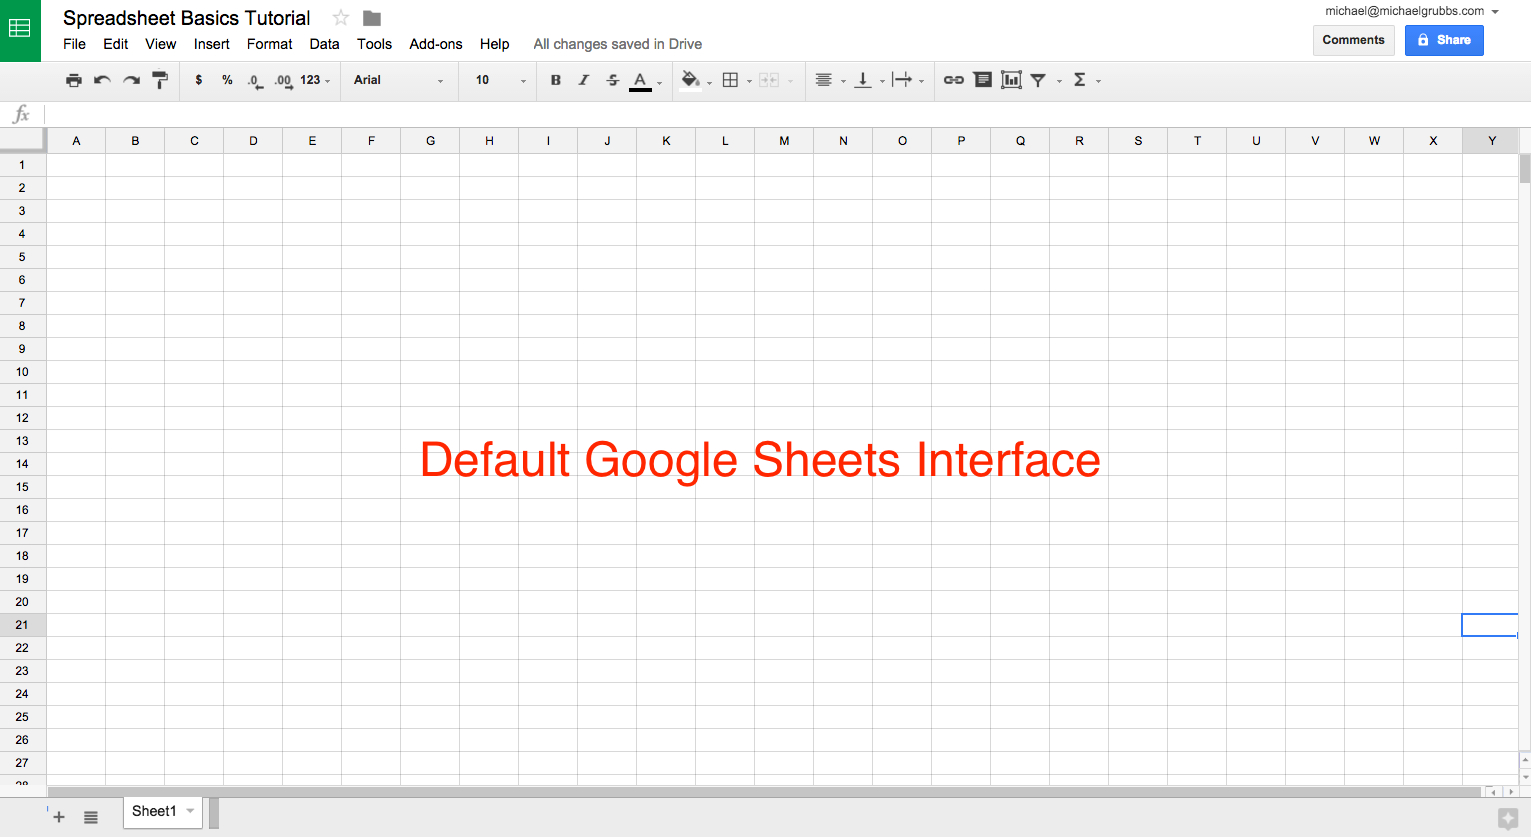 What Is A Function In A Spreadsheet With Google Sheets 101: The Beginner's Guide To Online Spreadsheets  The